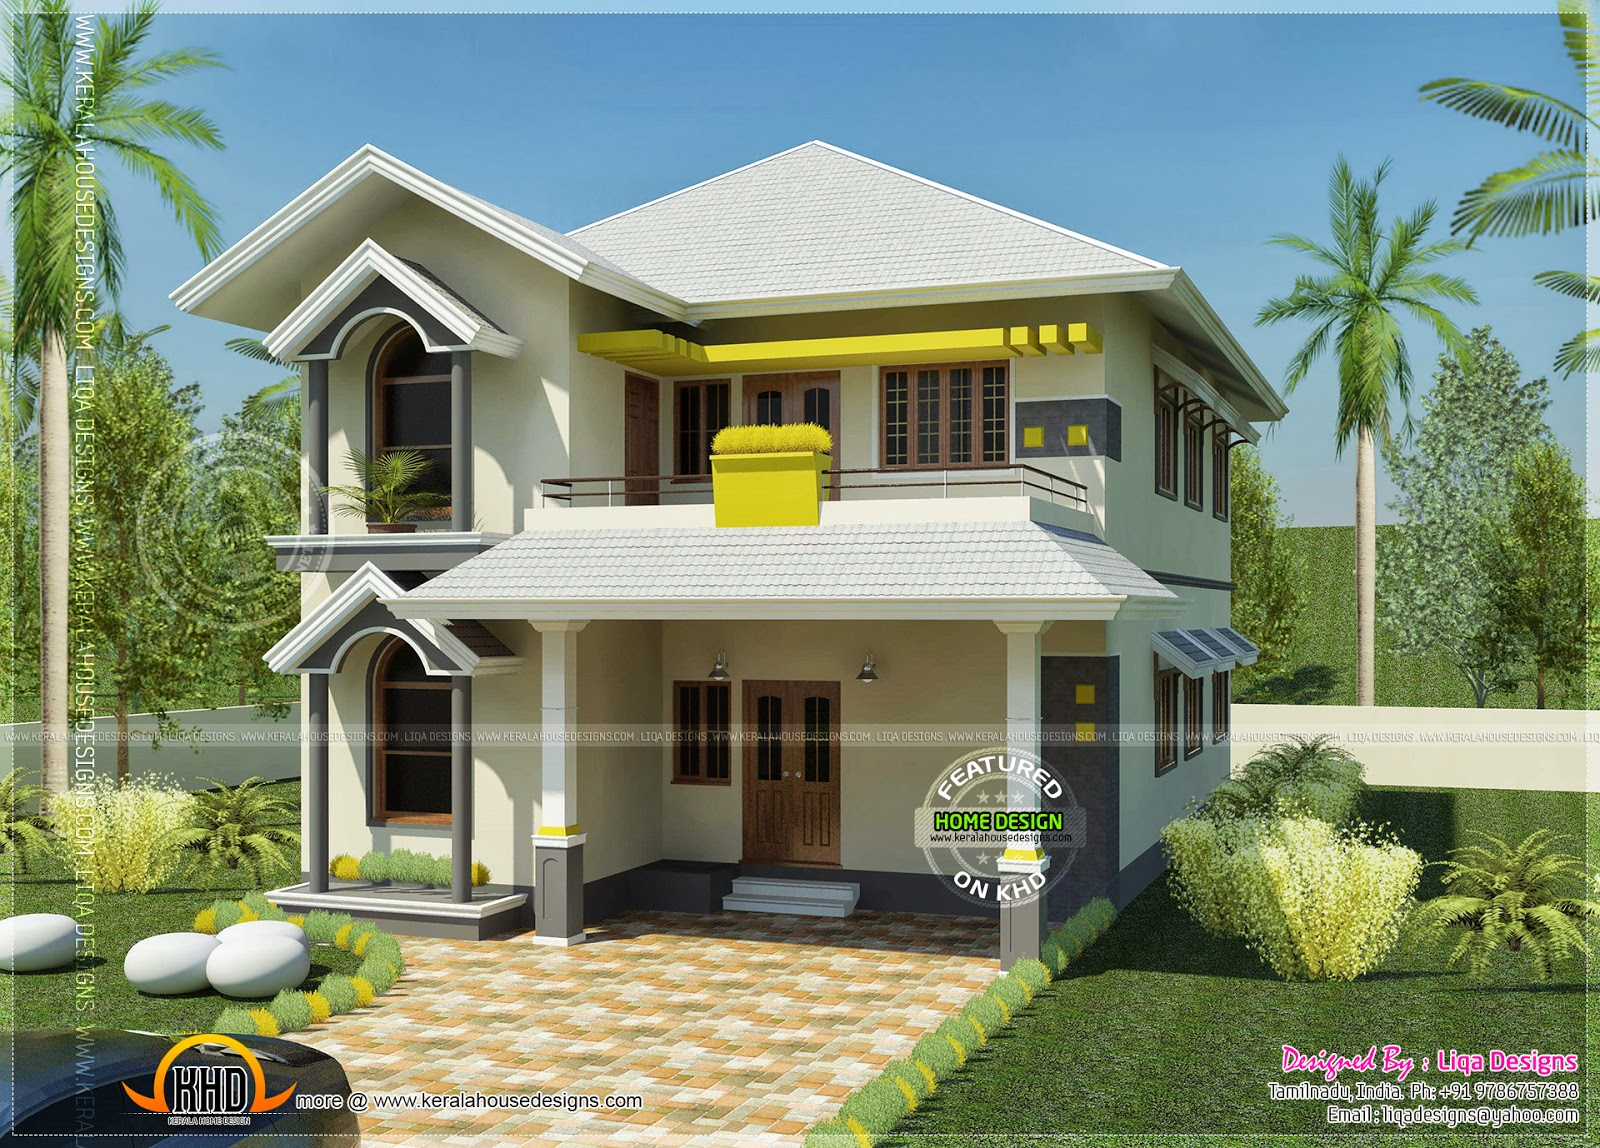 Kerala home design siddu buzz for House building plans in india